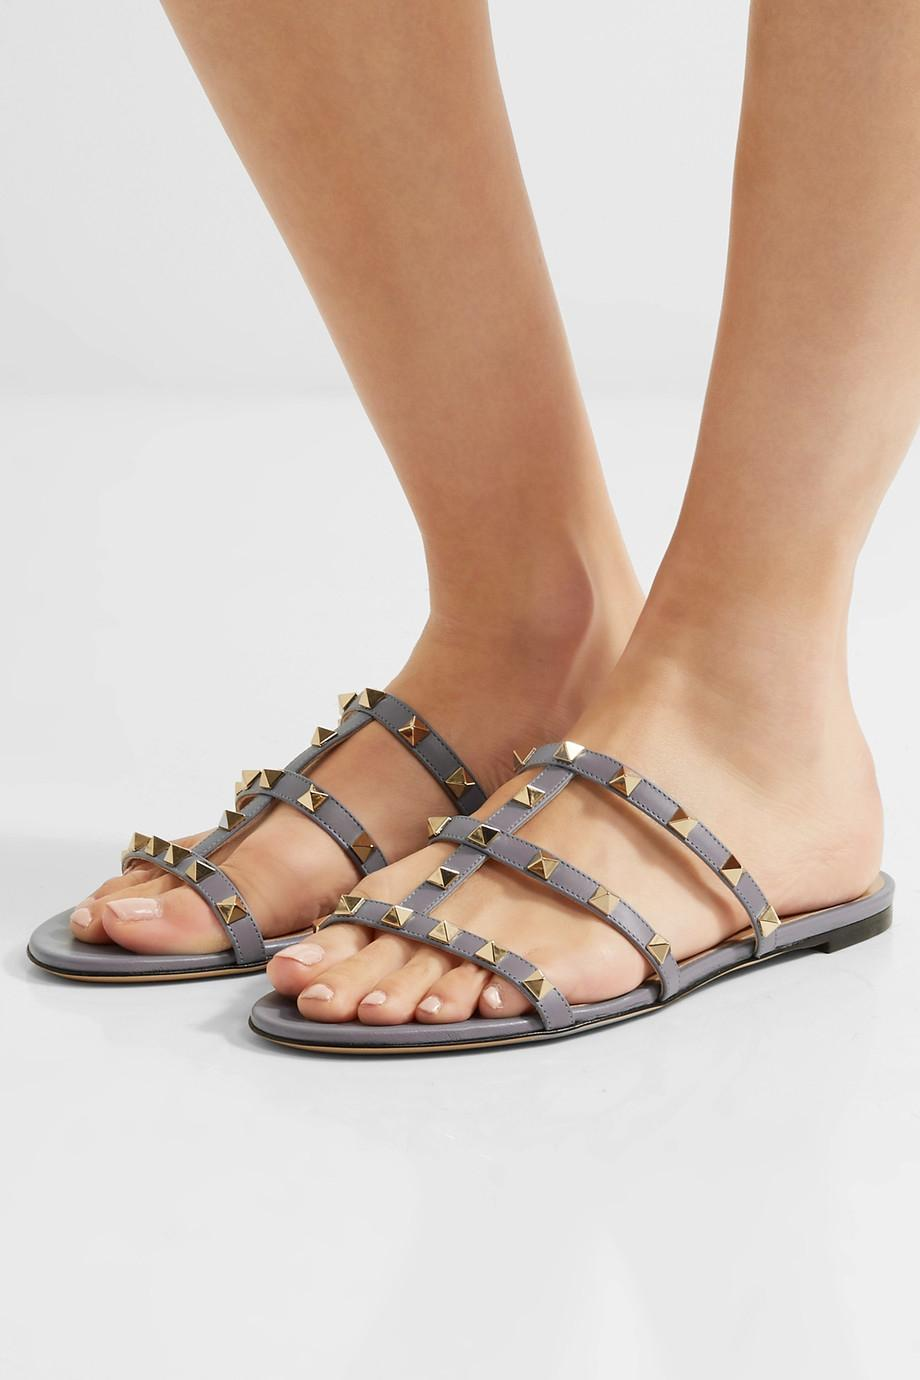 Free Shipping Clearance 2018 Unisex Valentino Rockstud slide sandals Free Shipping Wiki Best Wholesale Online 1pVCAmns2